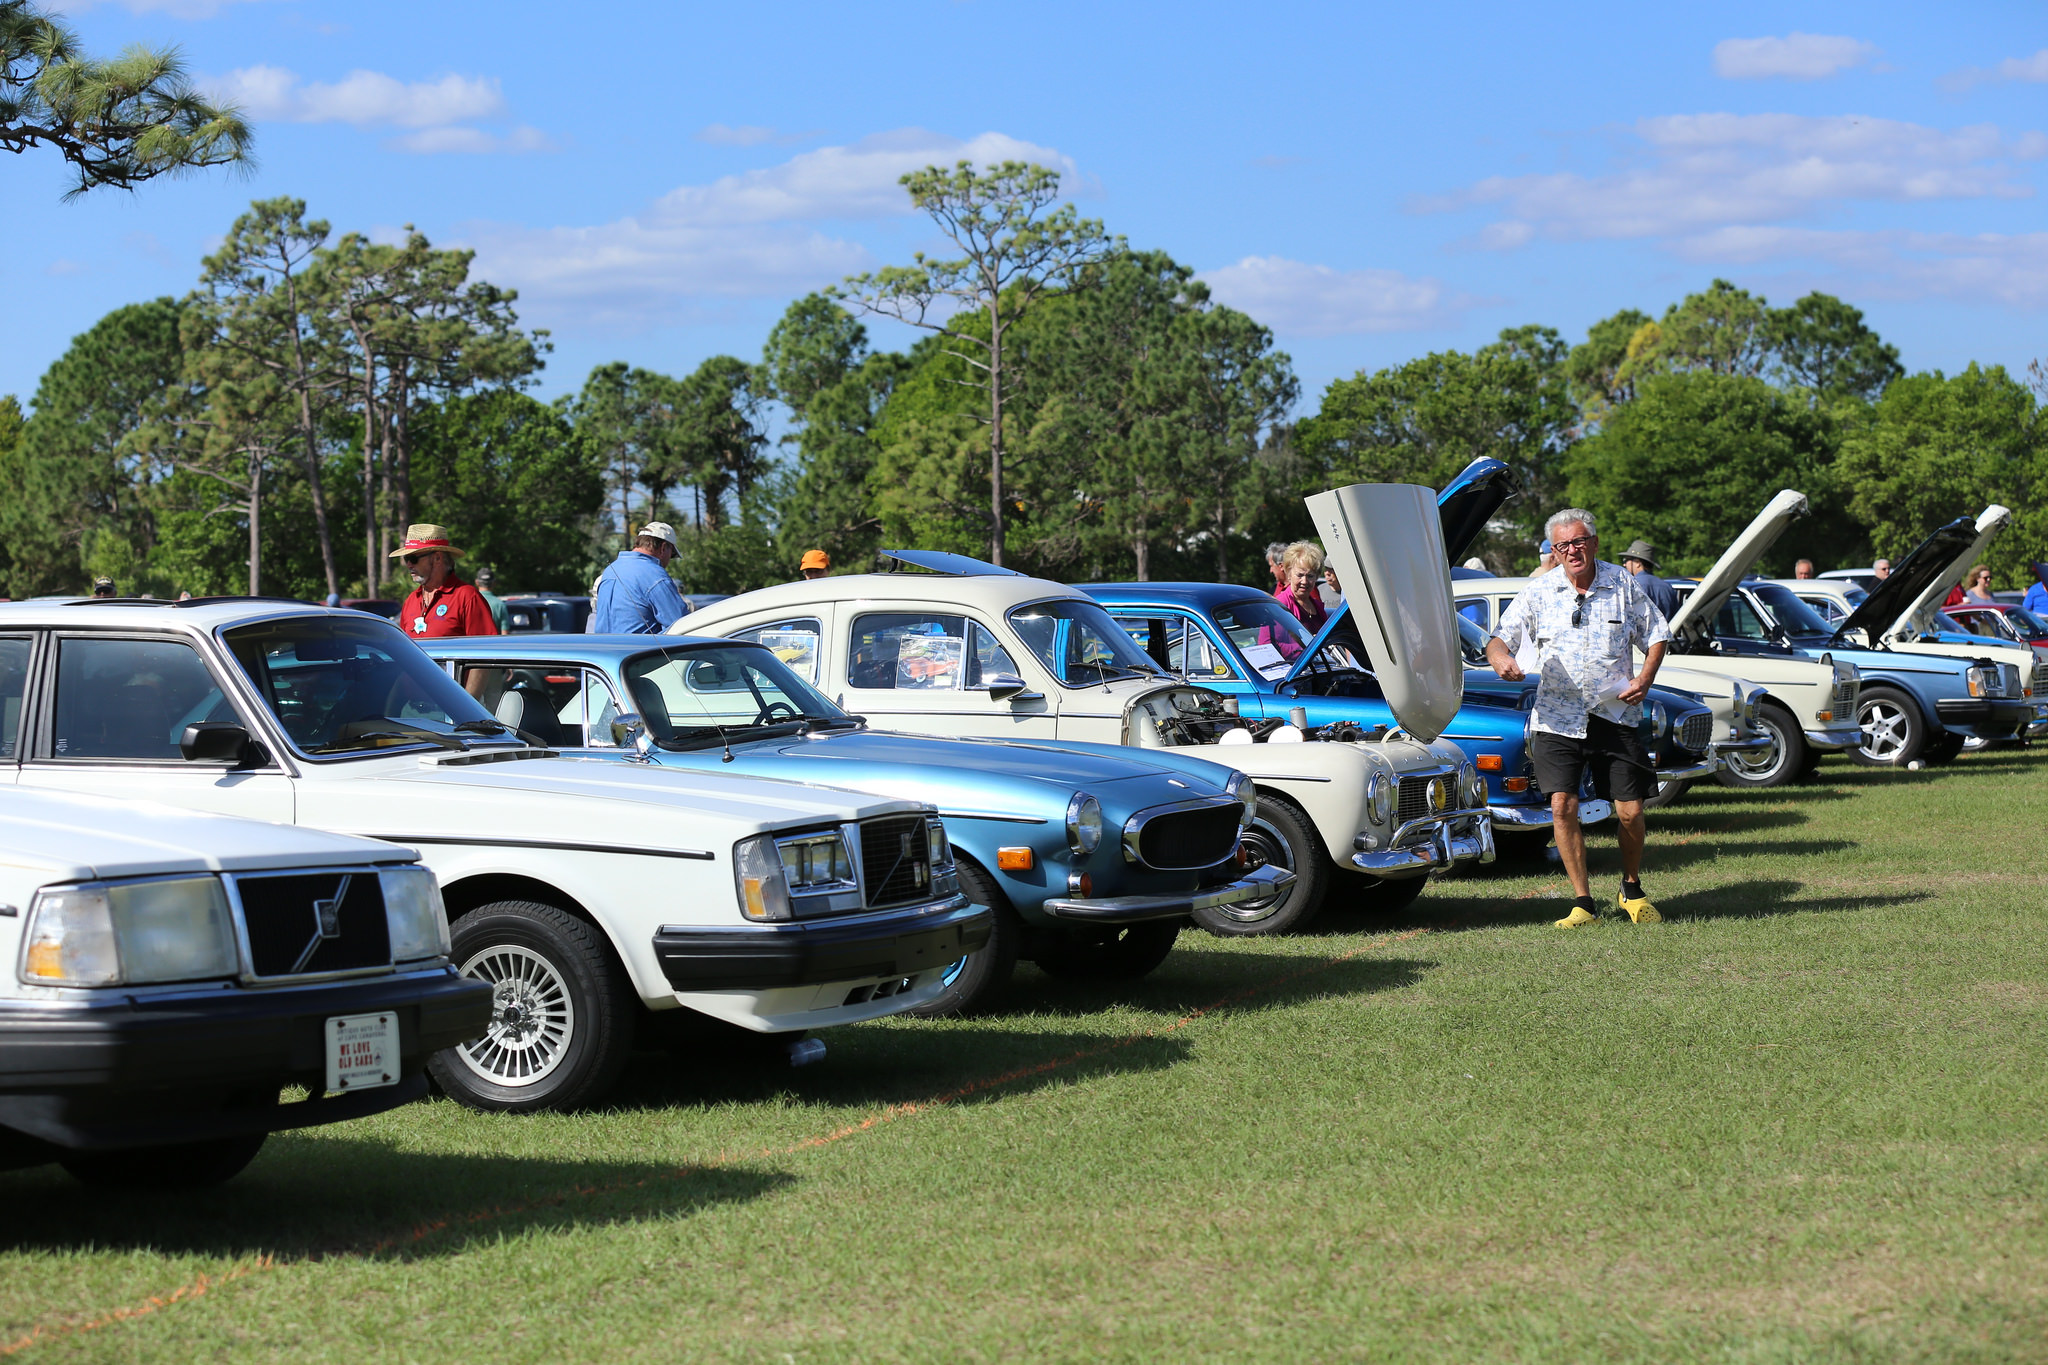 Spring Meet Report Celebration Of Cars Florida Chapter Of - Wickham park car show melbourne fl